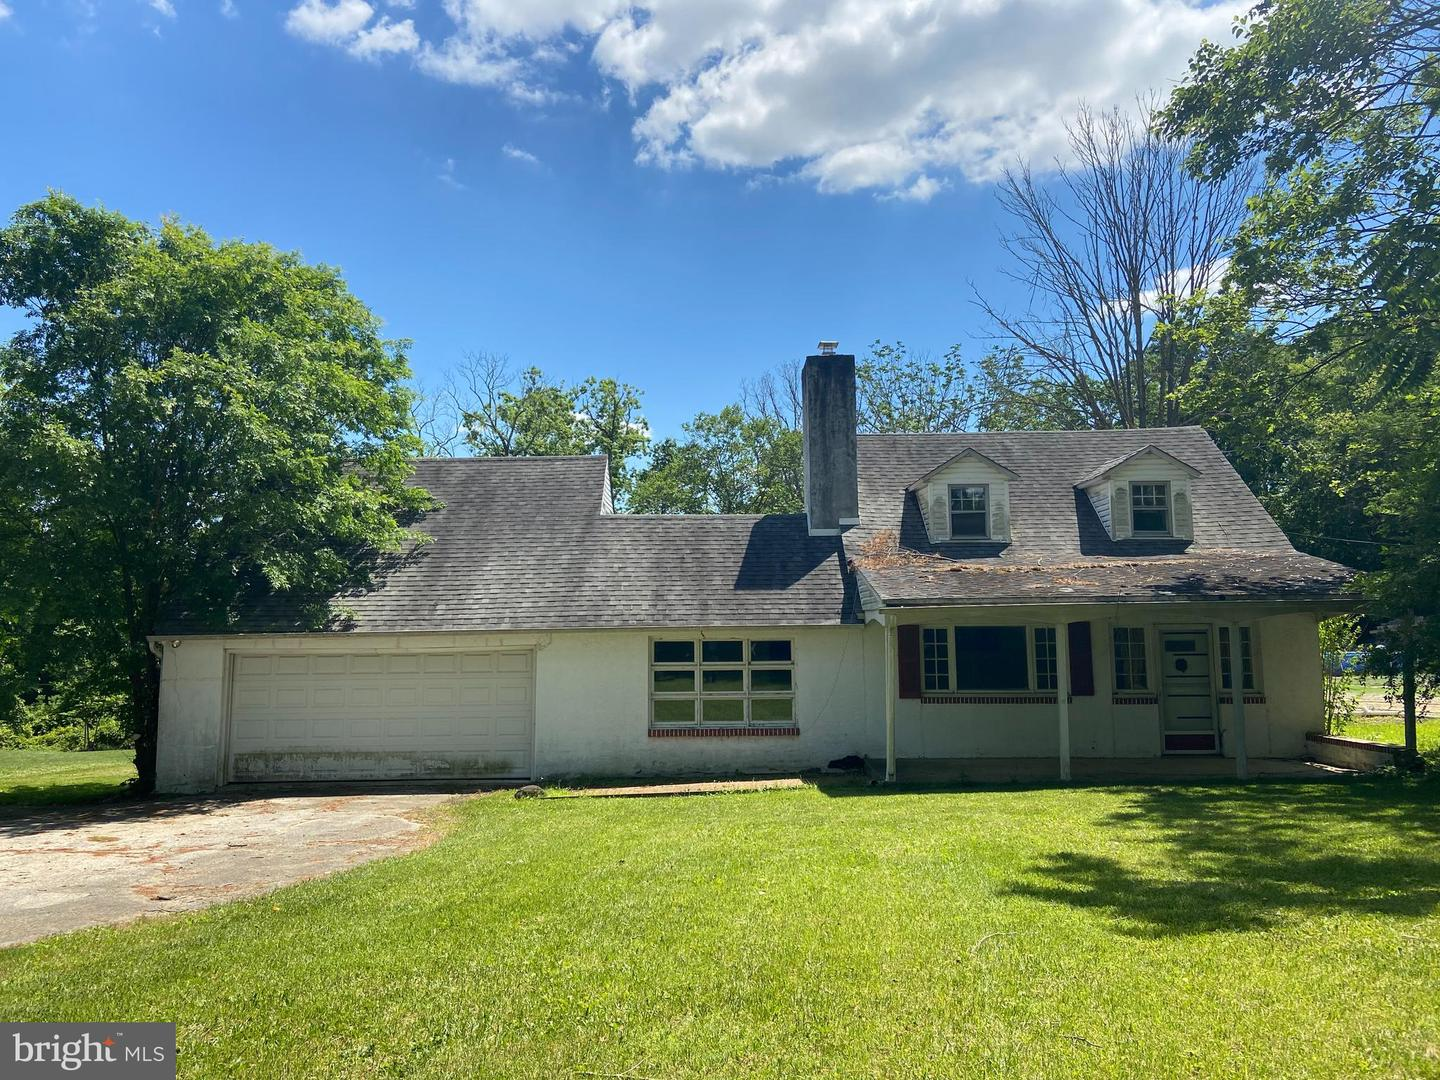 6025 West Chester Pike Newtown Square, PA 19073